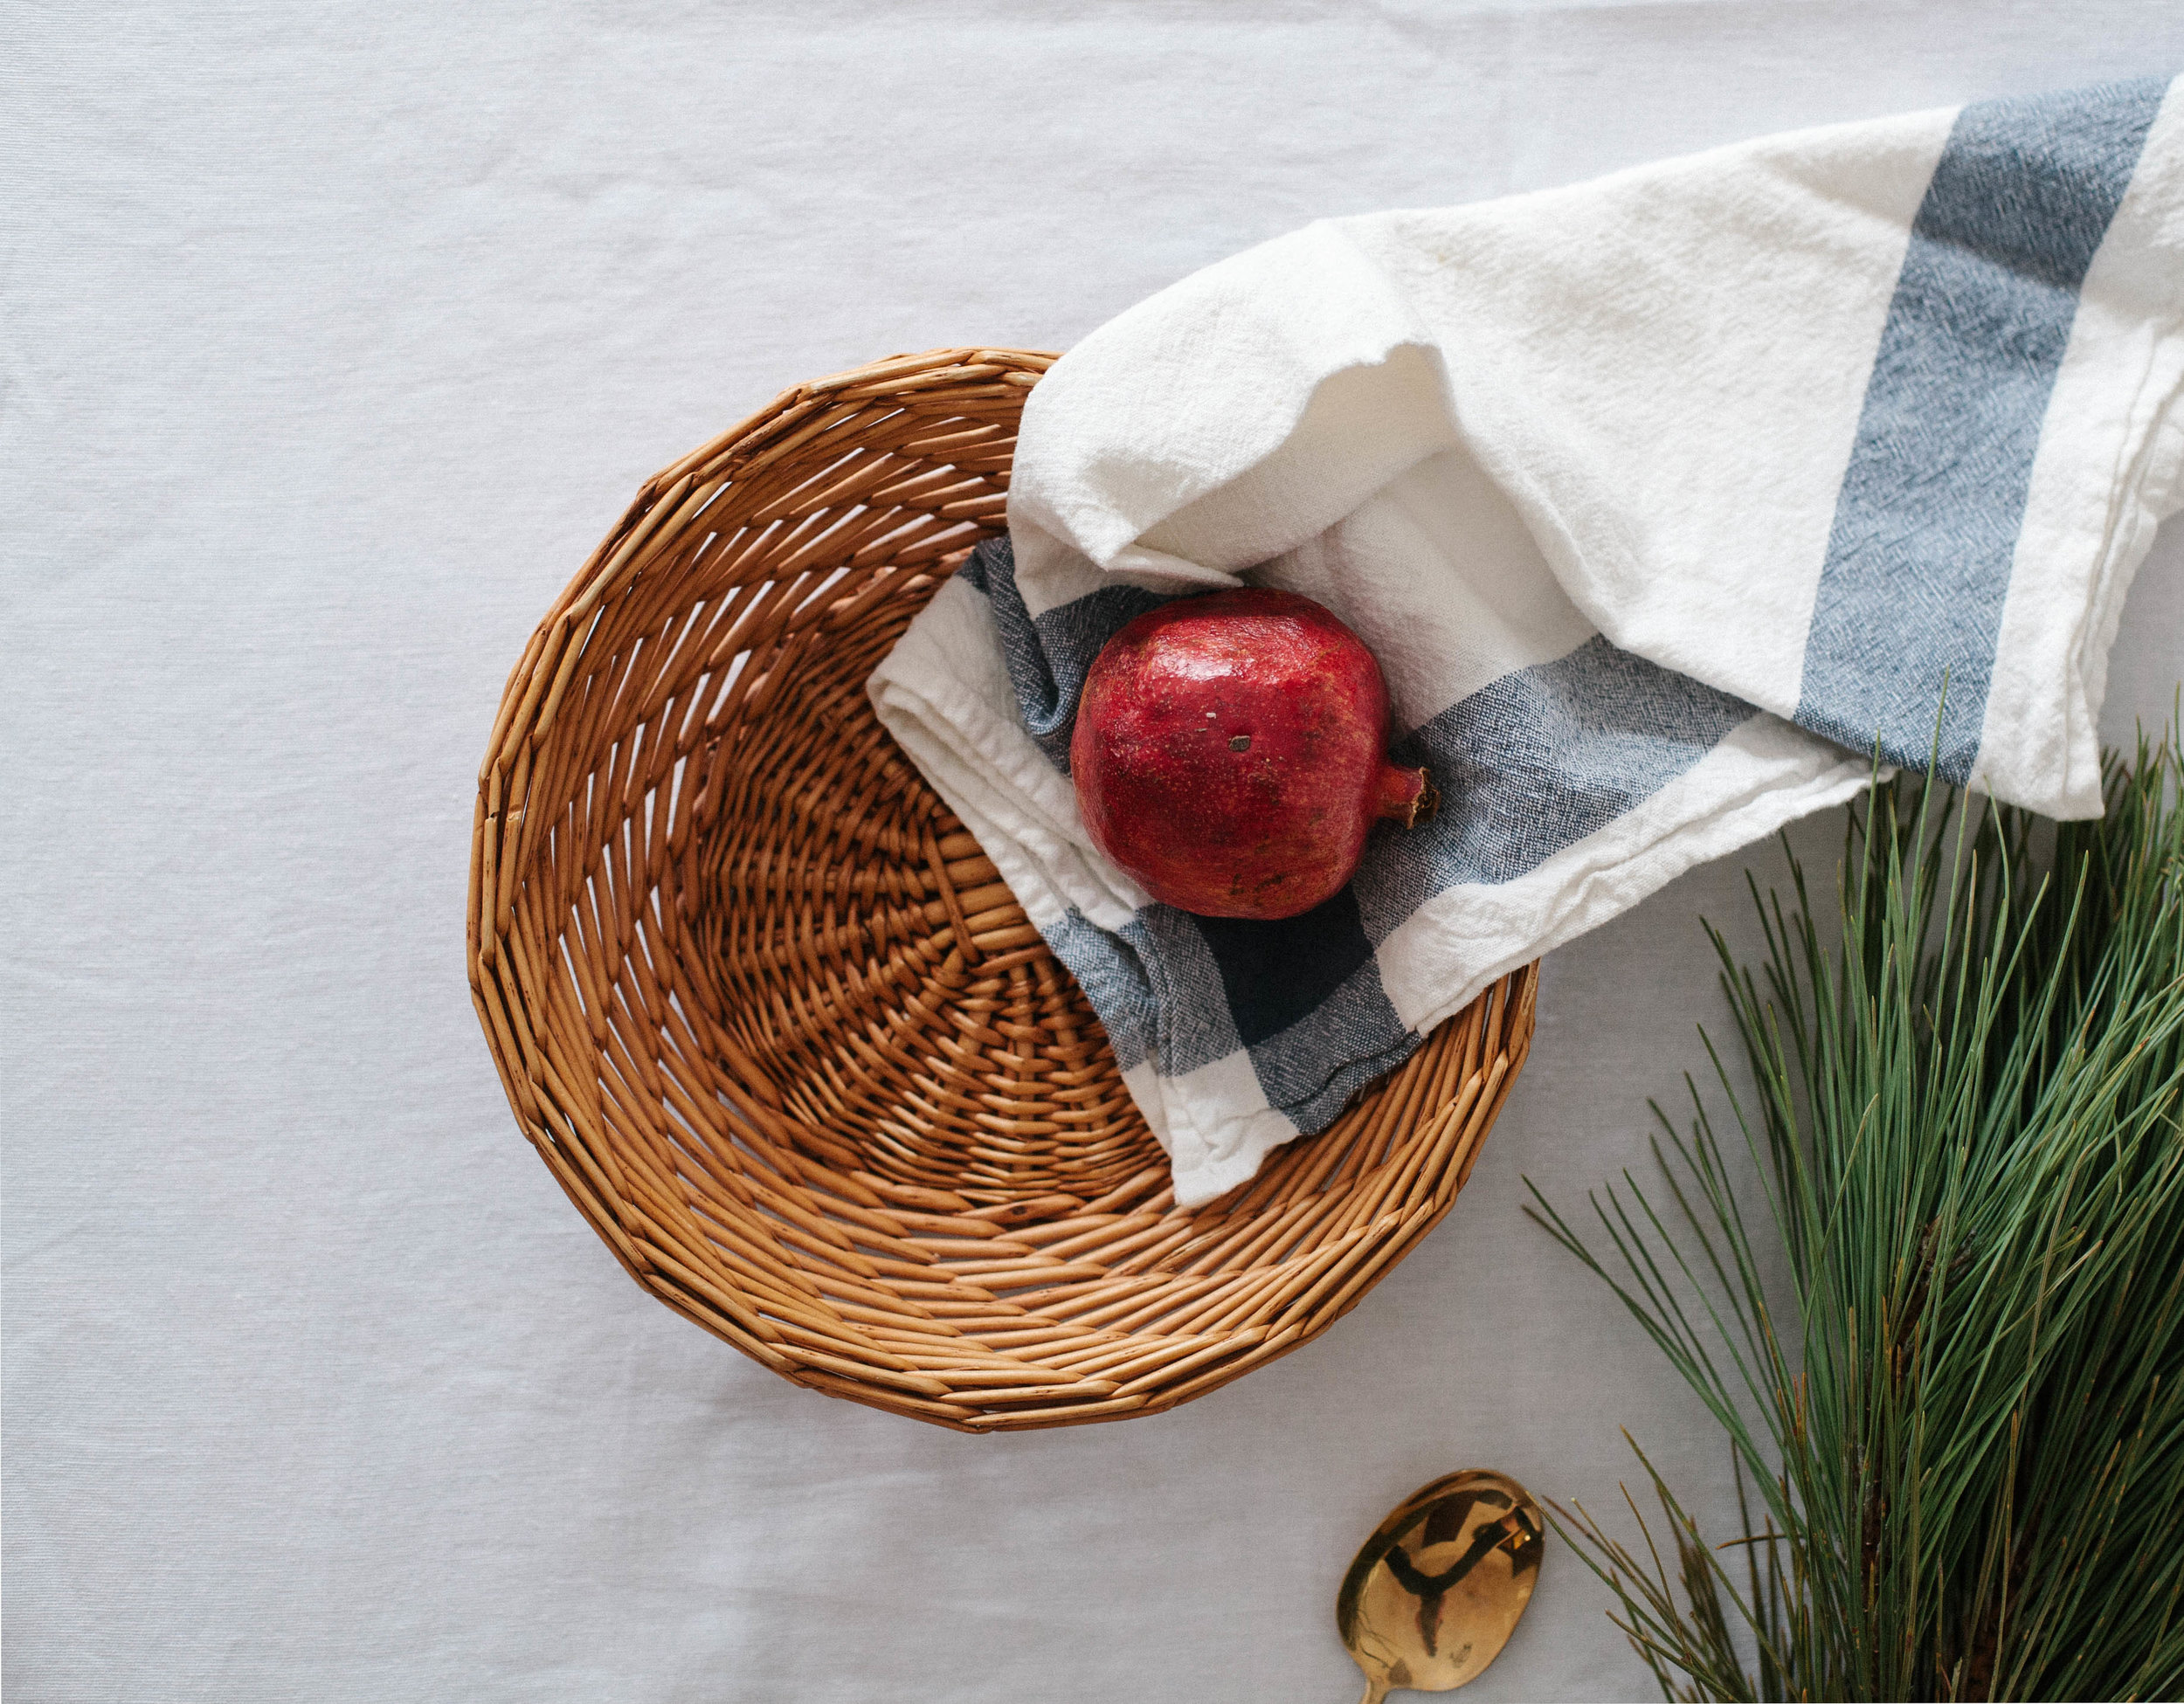 Shop this catchall basket  here .